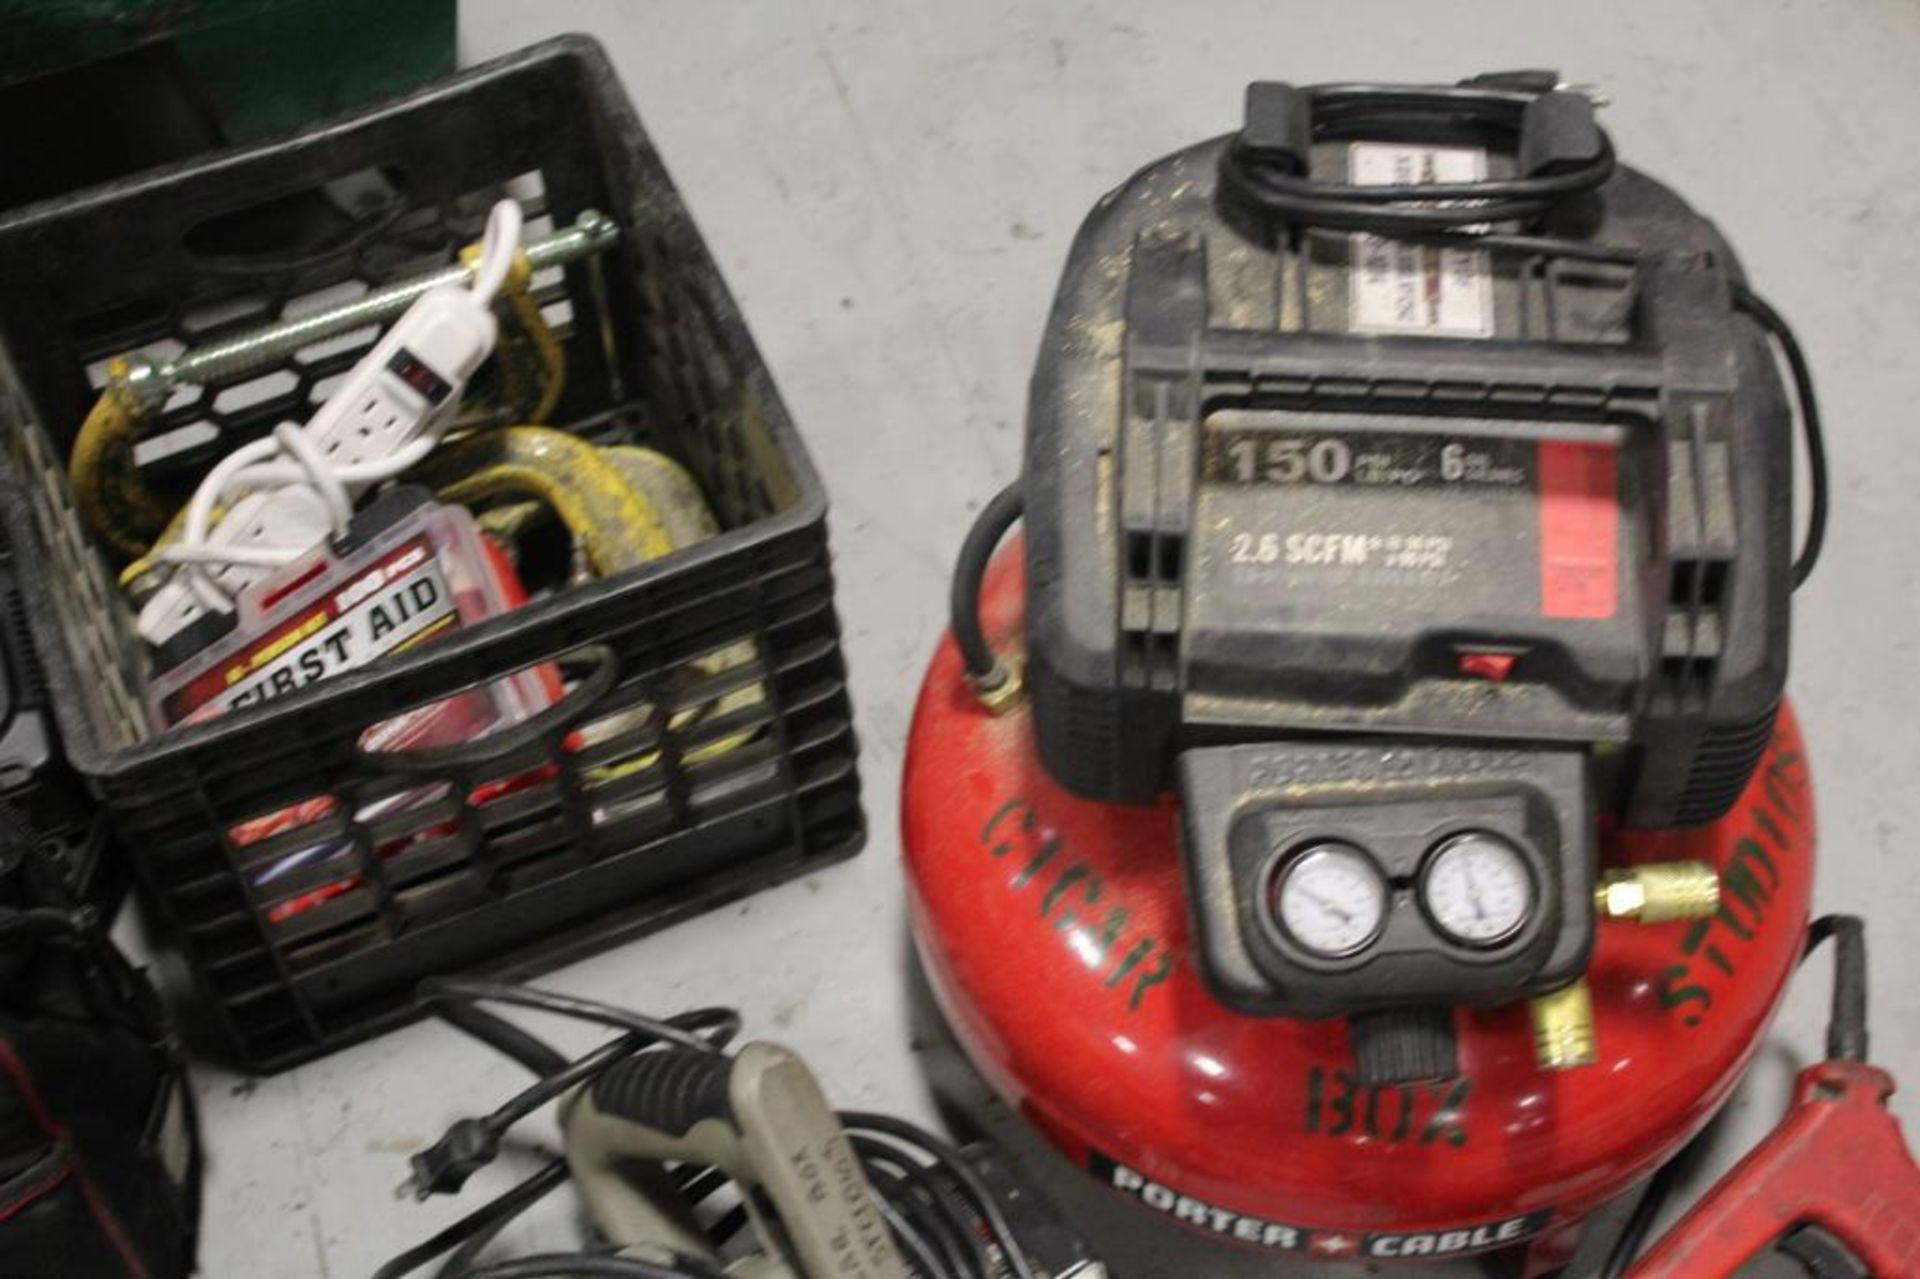 Greenlee tool box w/contents - Image 5 of 7